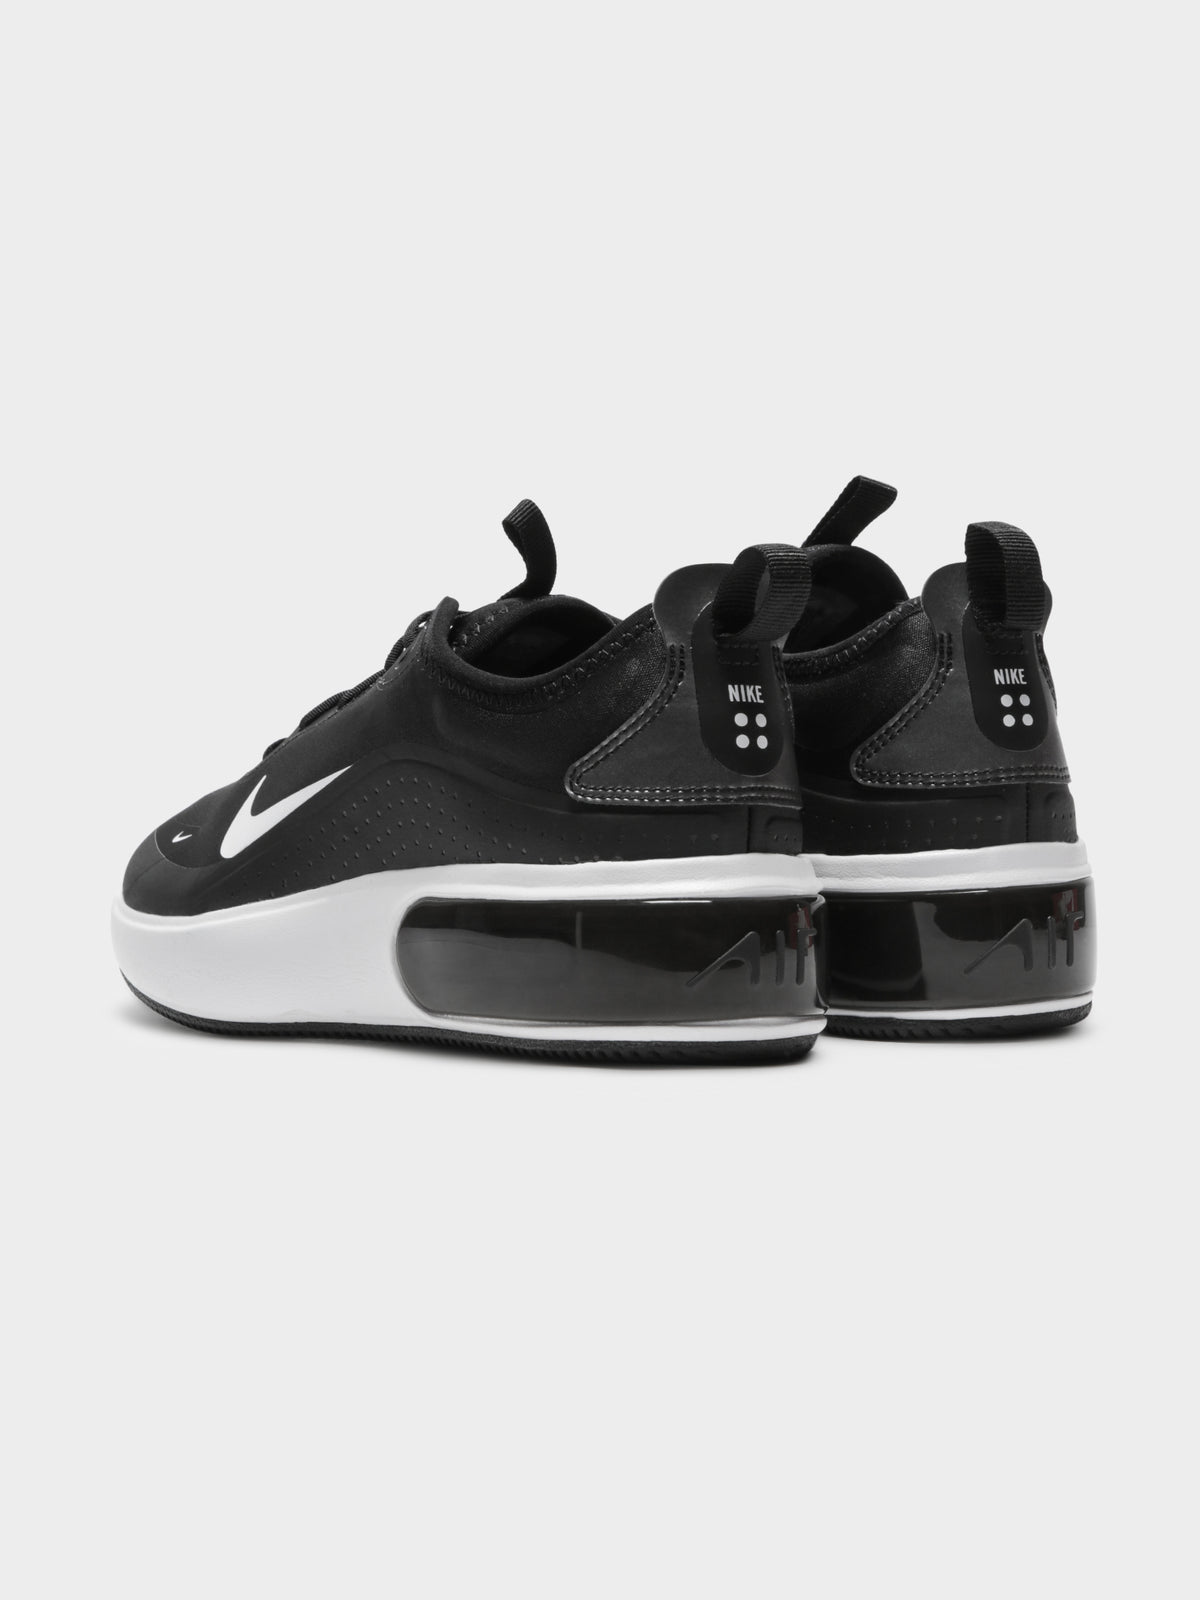 Air Max Dia Sneakers in Black & White